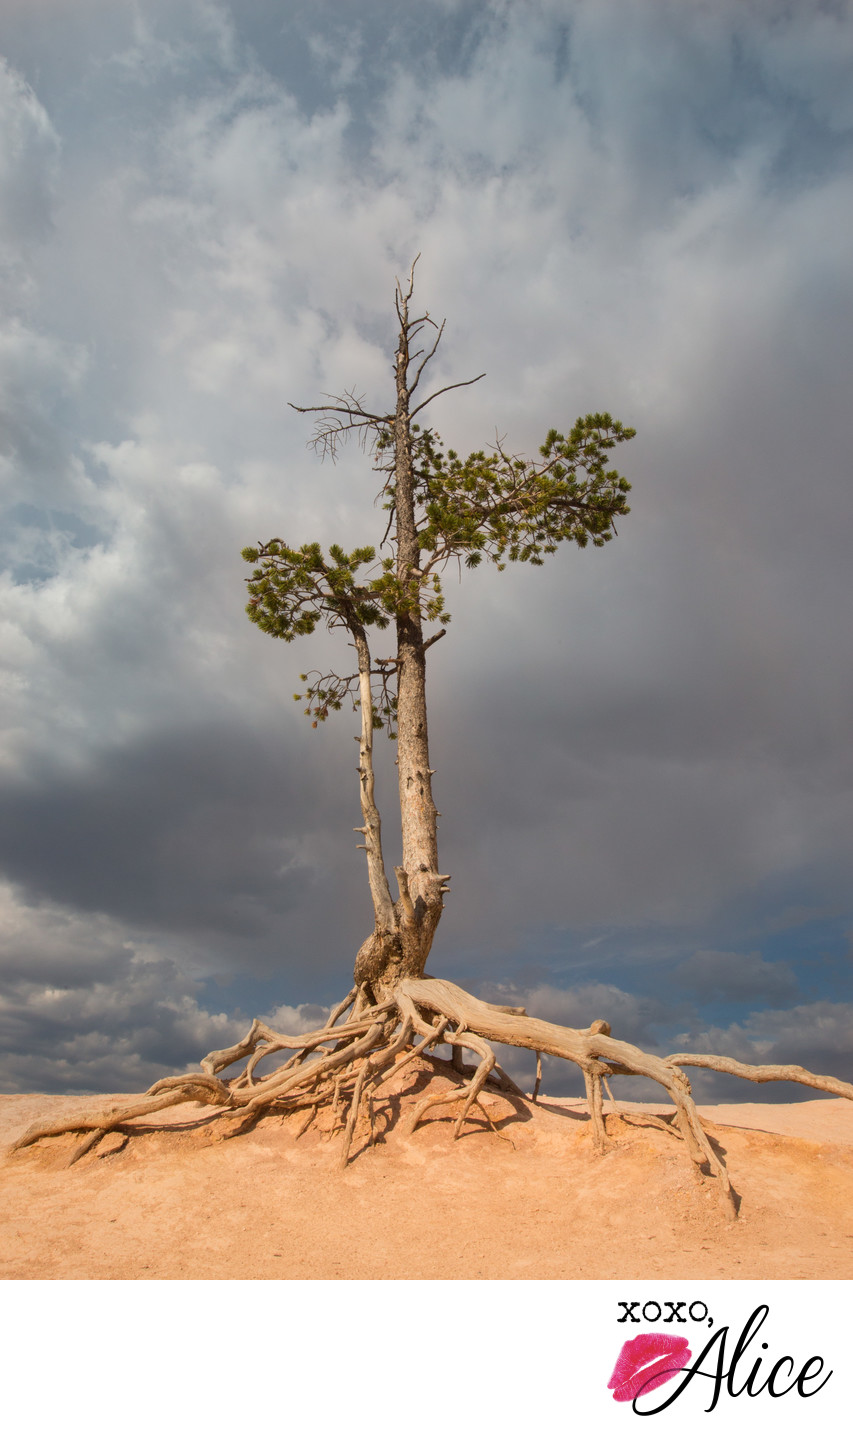 solitary tree and roots in the desert against dark sky